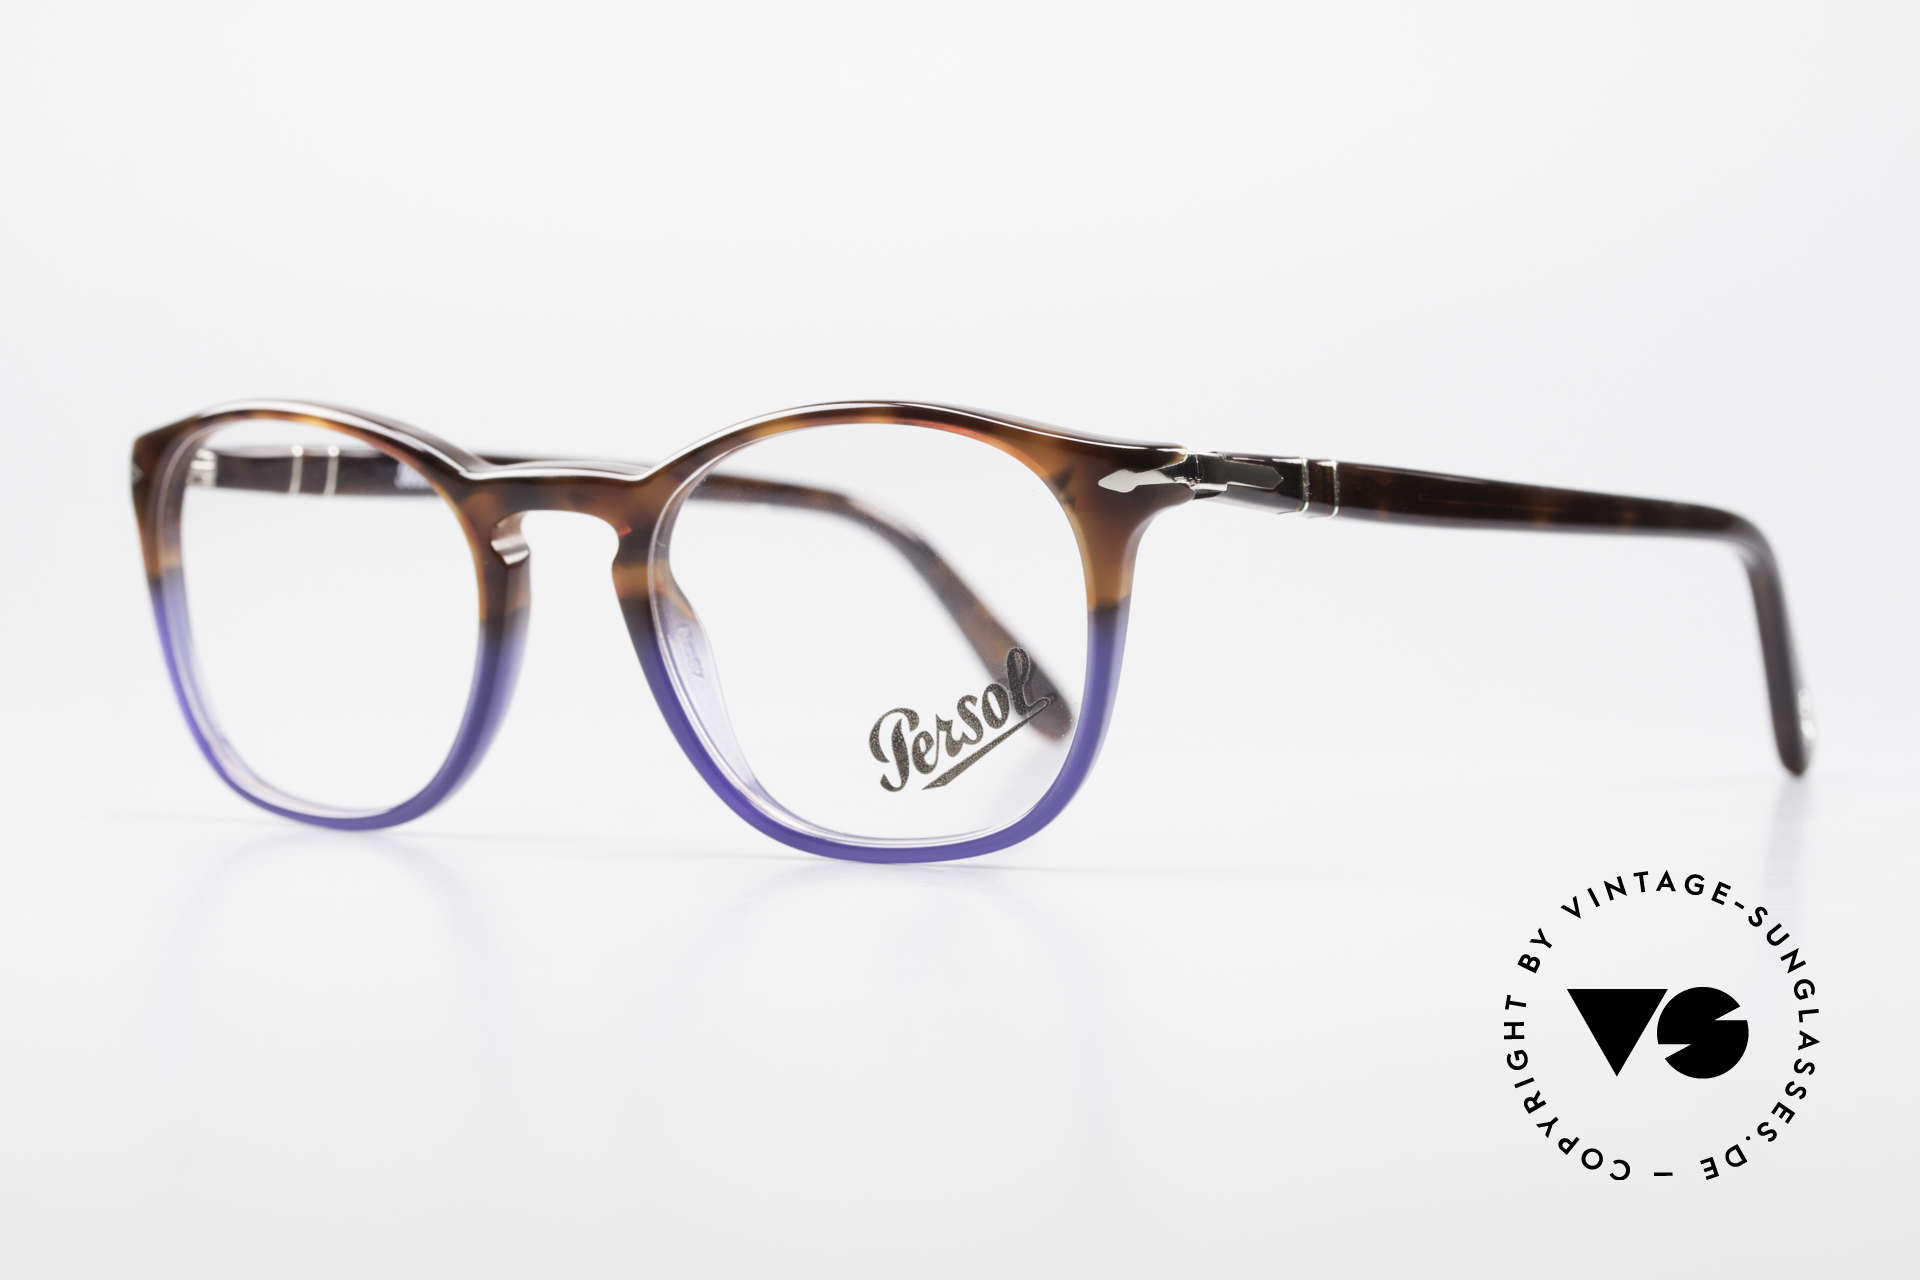 Persol 3007 Terrae Oceano Edition Small, unworn (like all our classic PERSOL eyeglasses), Made for Men and Women